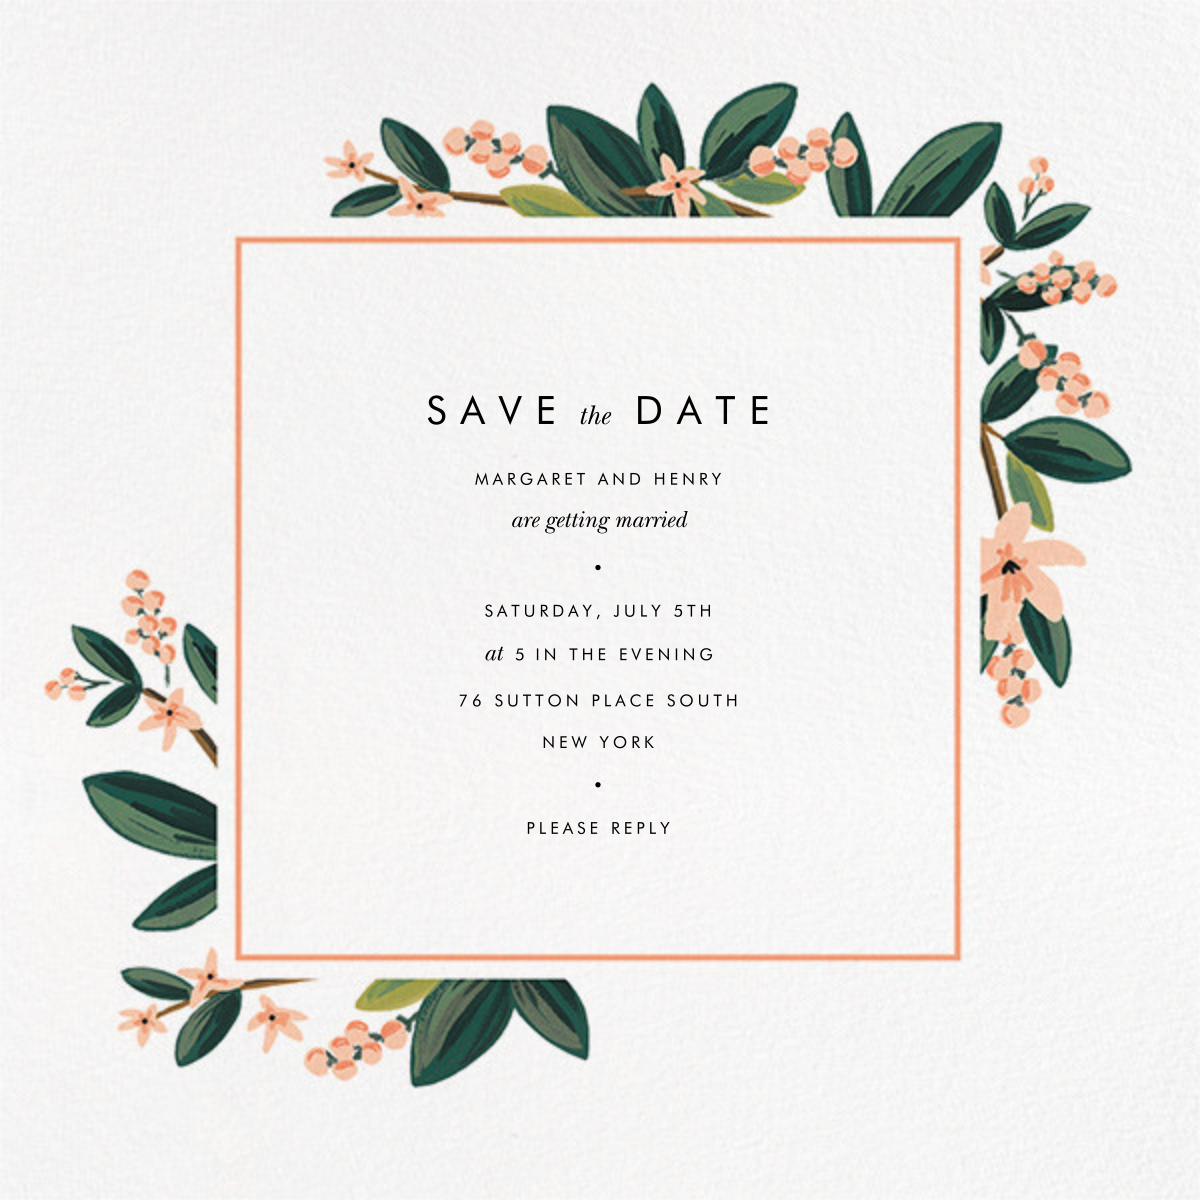 November Herbarium (Save the Date) - Rifle Paper Co. - Party save the dates